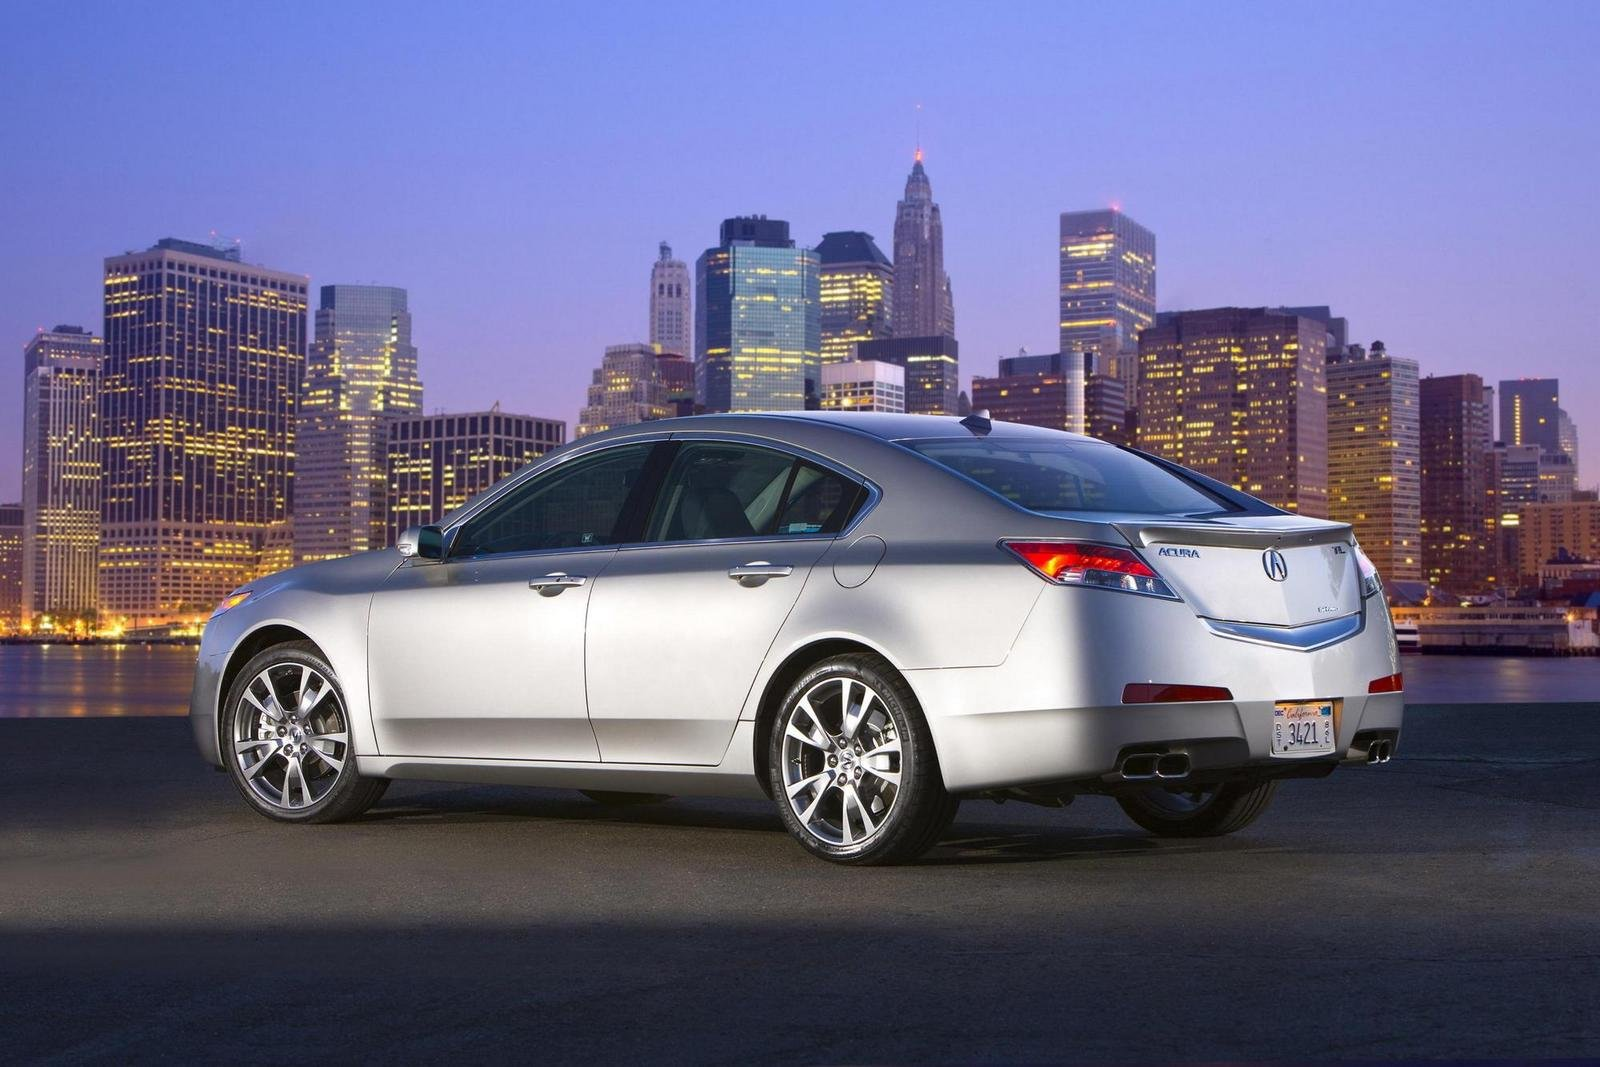 2010 acura tl picture 326157 car review top speed. Black Bedroom Furniture Sets. Home Design Ideas